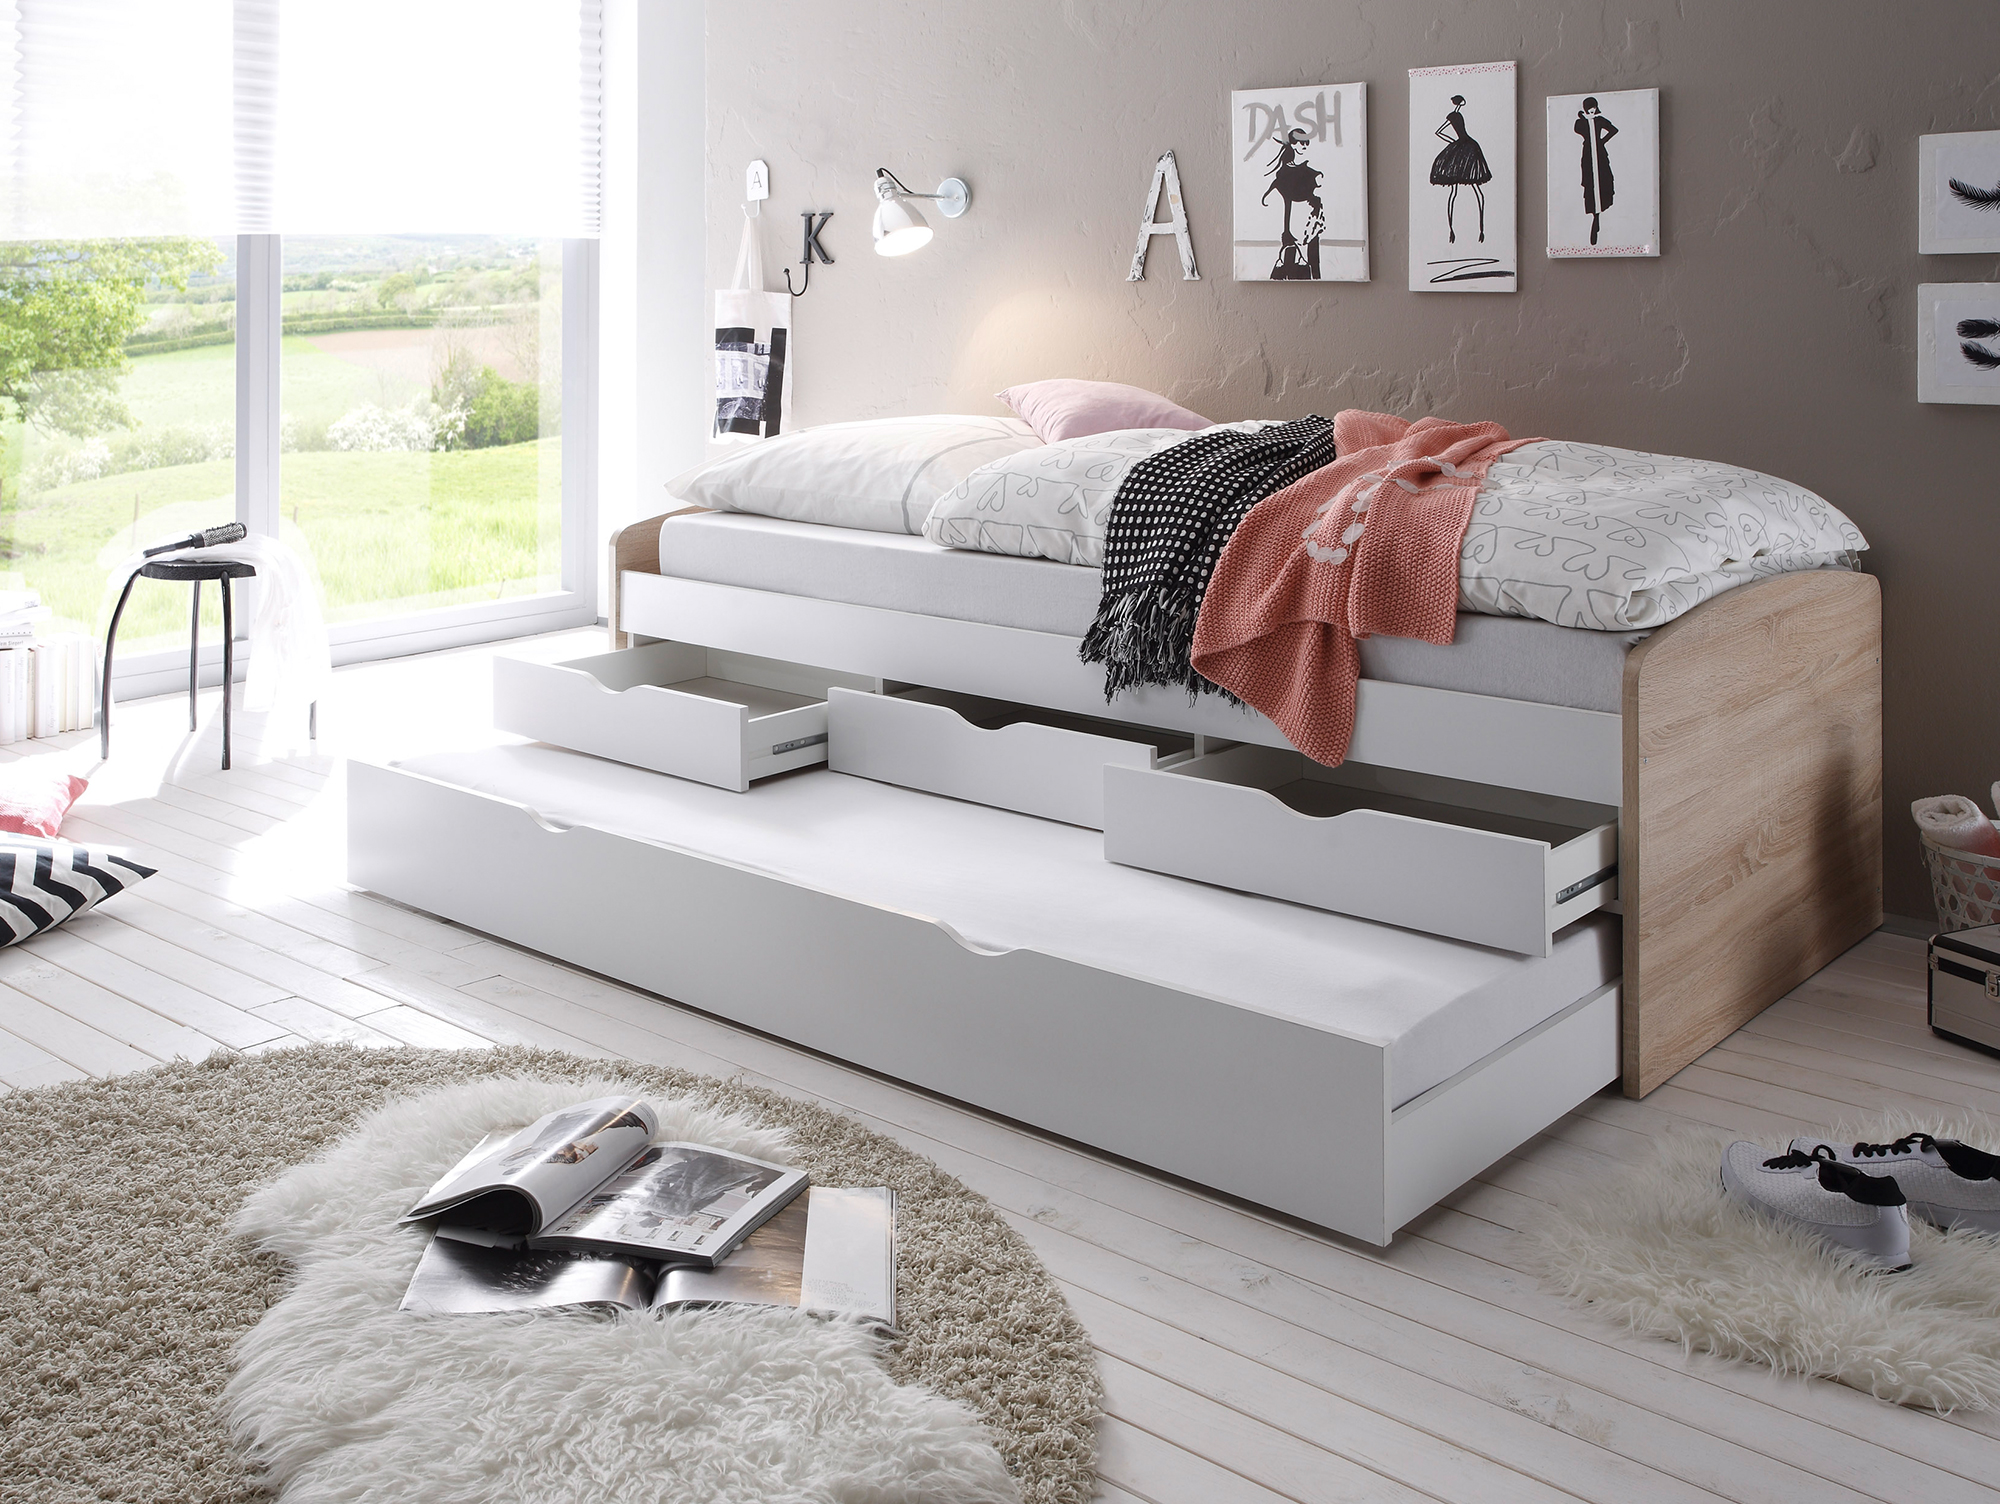 nadja tandemliege jugendbett 90x200 cm eiche sonoma. Black Bedroom Furniture Sets. Home Design Ideas